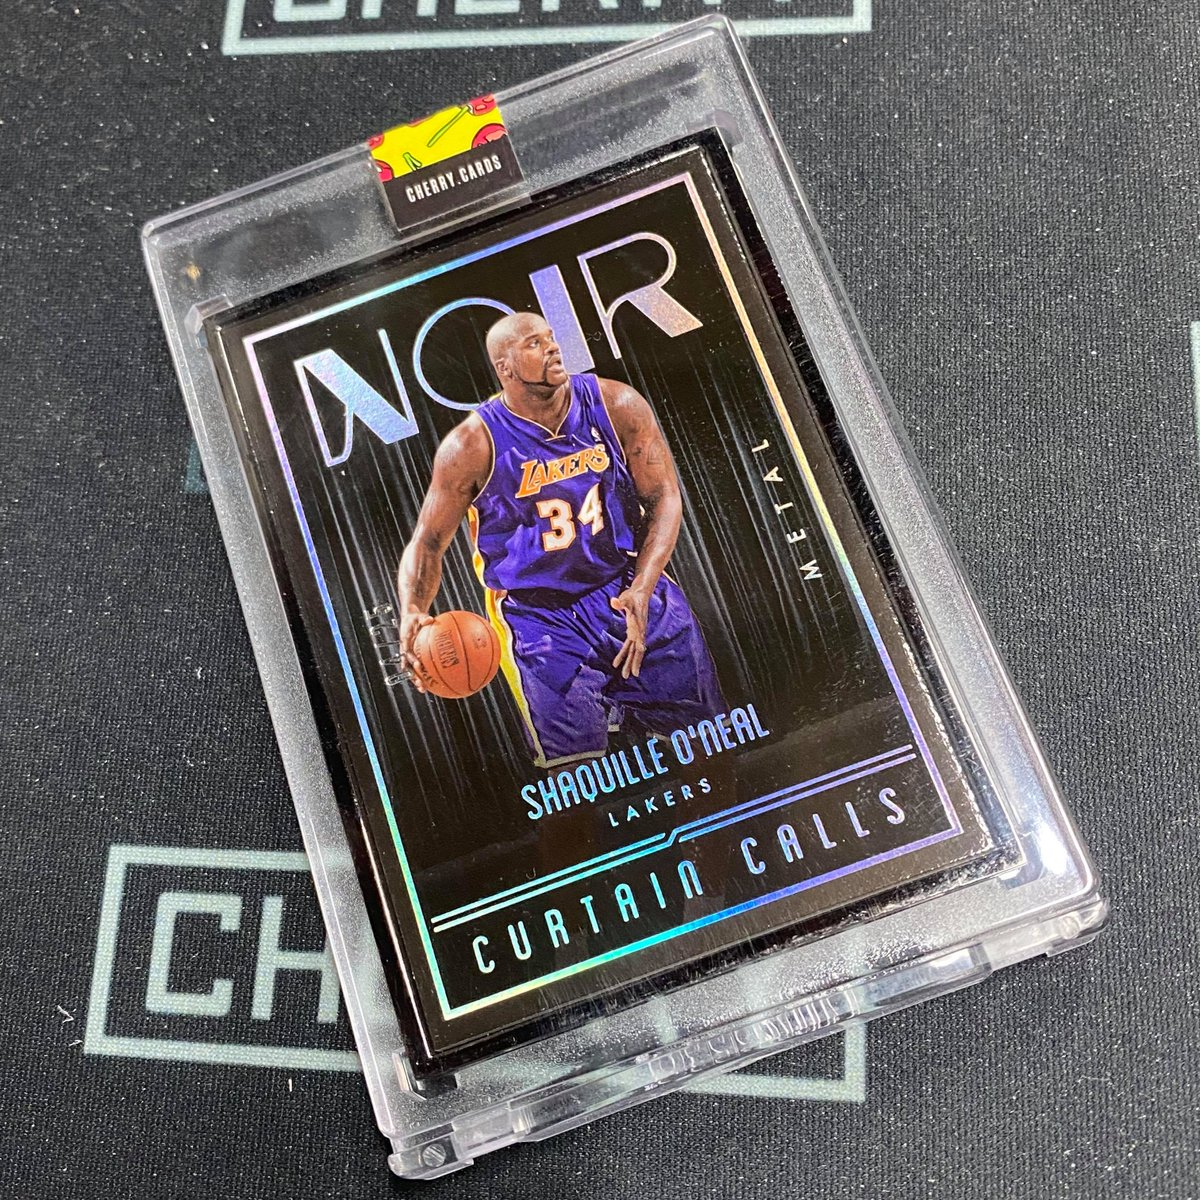 The Big Aristotle. NOIR delivers the big fella. #sportscards #whodoyoucollect #thehobby #shaq #paniniamerica #groupbreaks #lakersnation #lebron #rookiecards #kobe #autograph #casebreaks #basketballcards #showyourhits #lukadoncic #hobbystore #cherrycards pic.twitter.com/m7ZWHywXfL